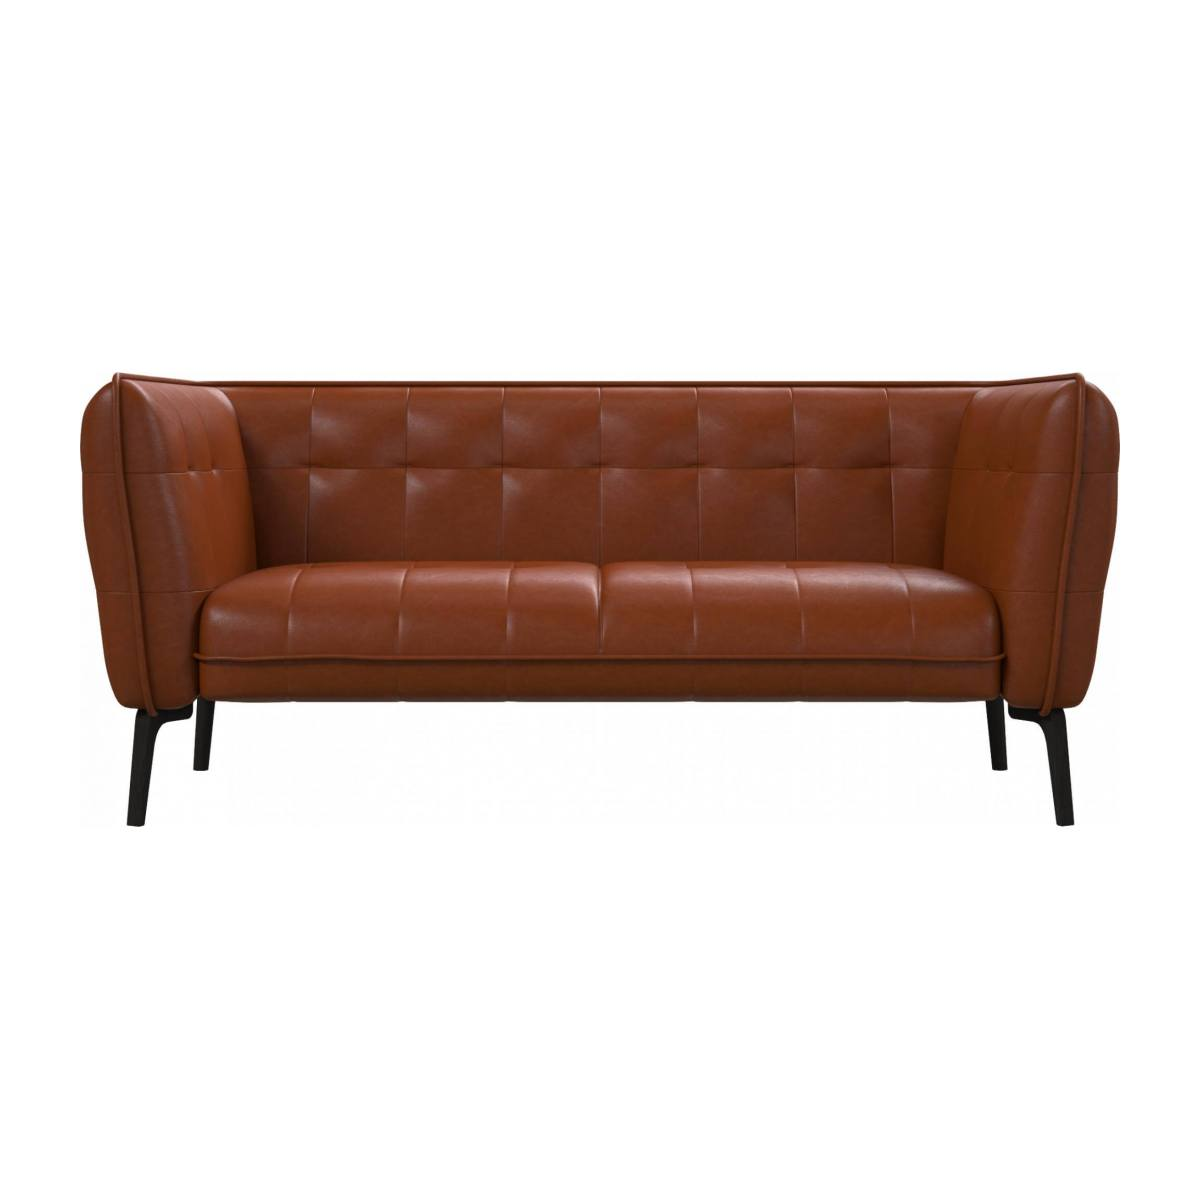 2 seater sofa in Vintage aniline leather, old chestnut and dark feet n°1